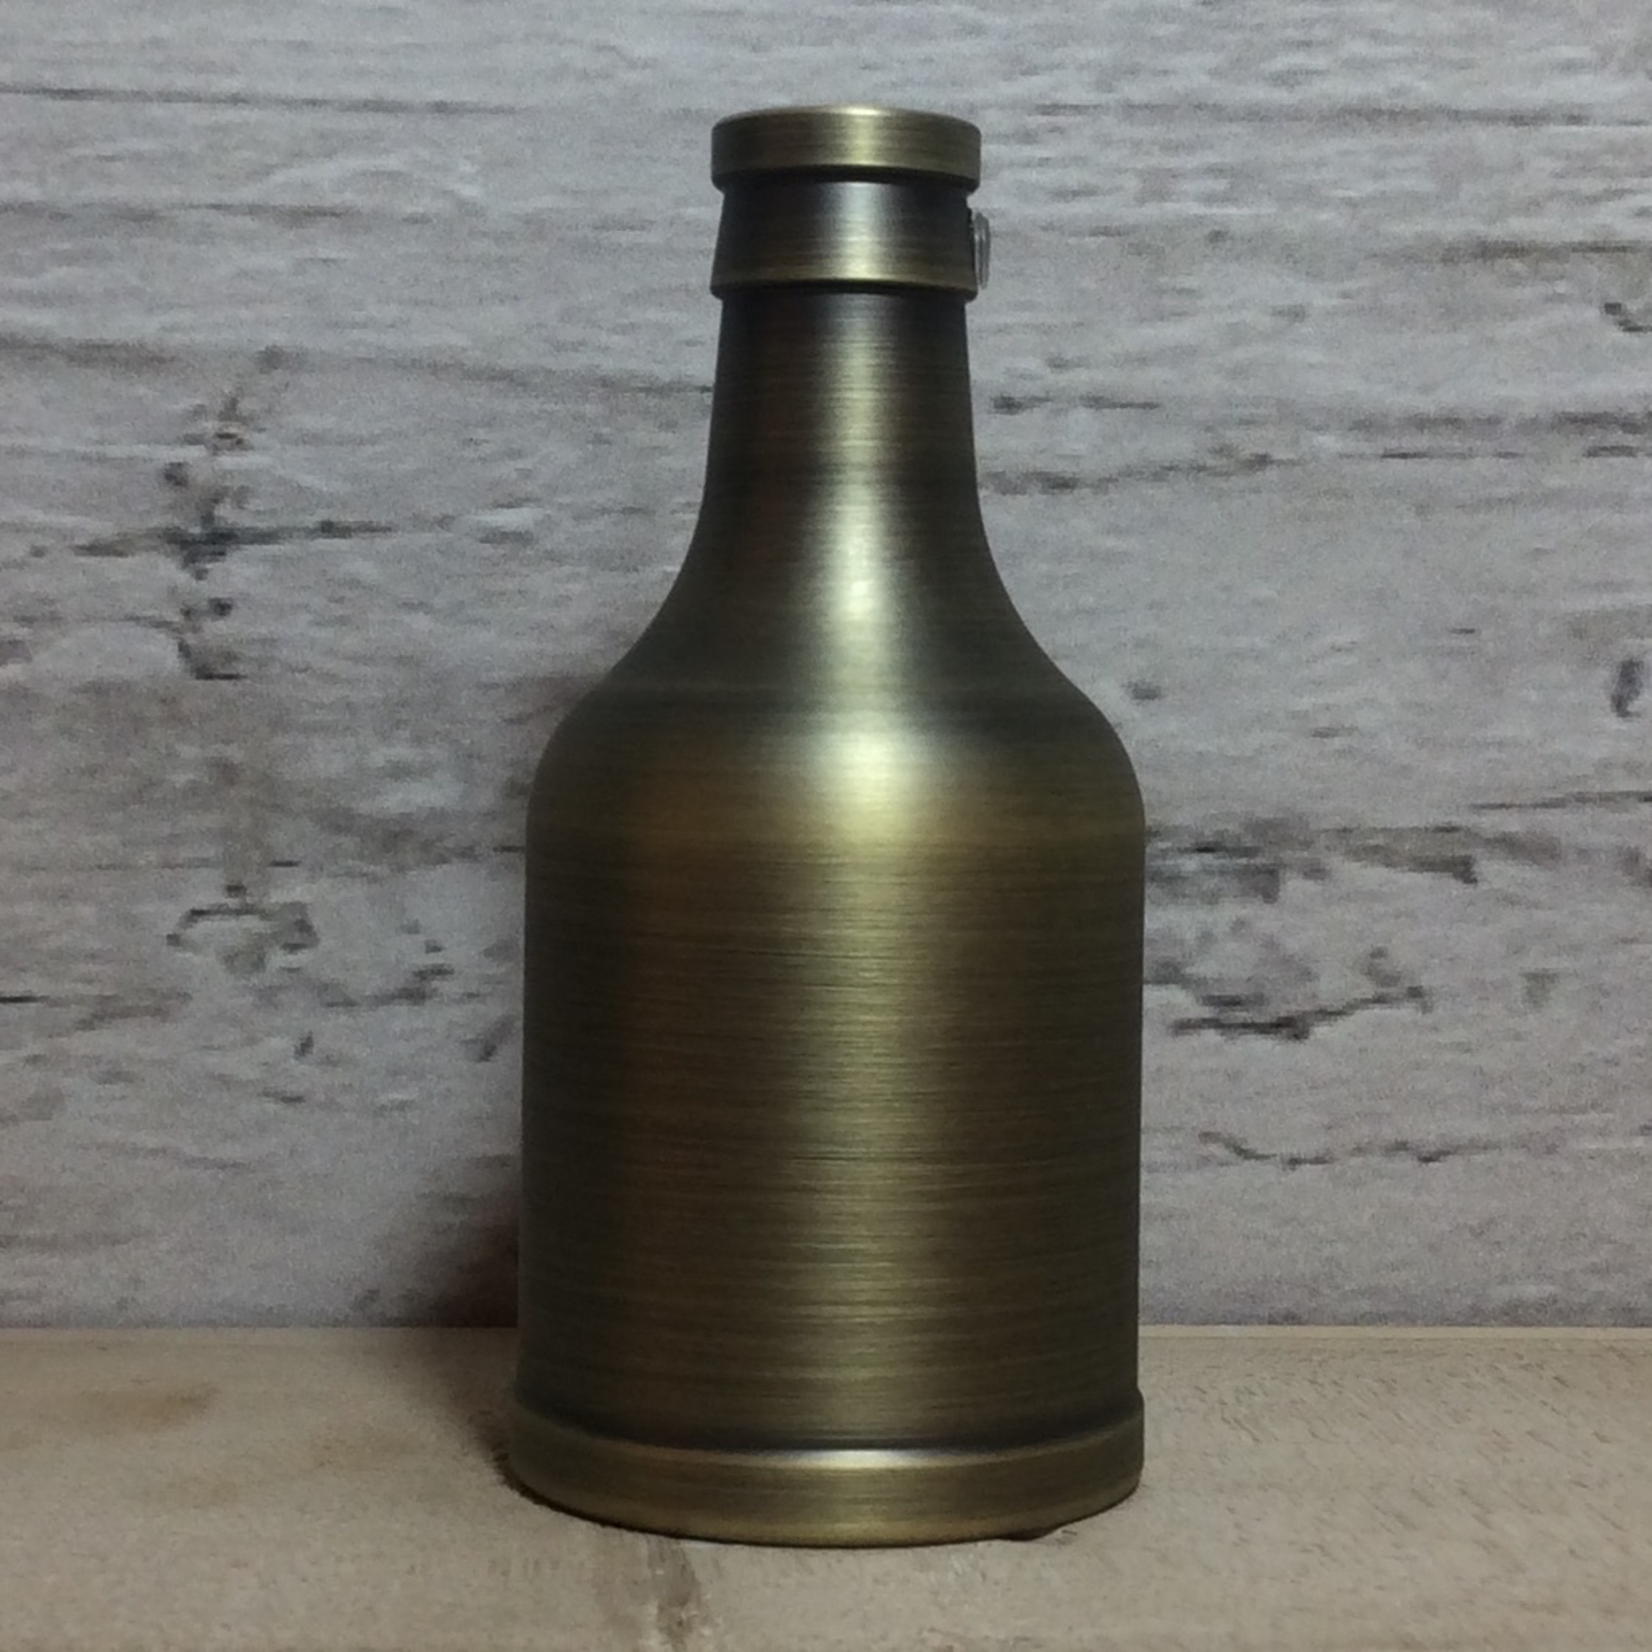 MaxLight Antique Brushed Brass Finish Lampholder With cord grip plastic E27 Fixing